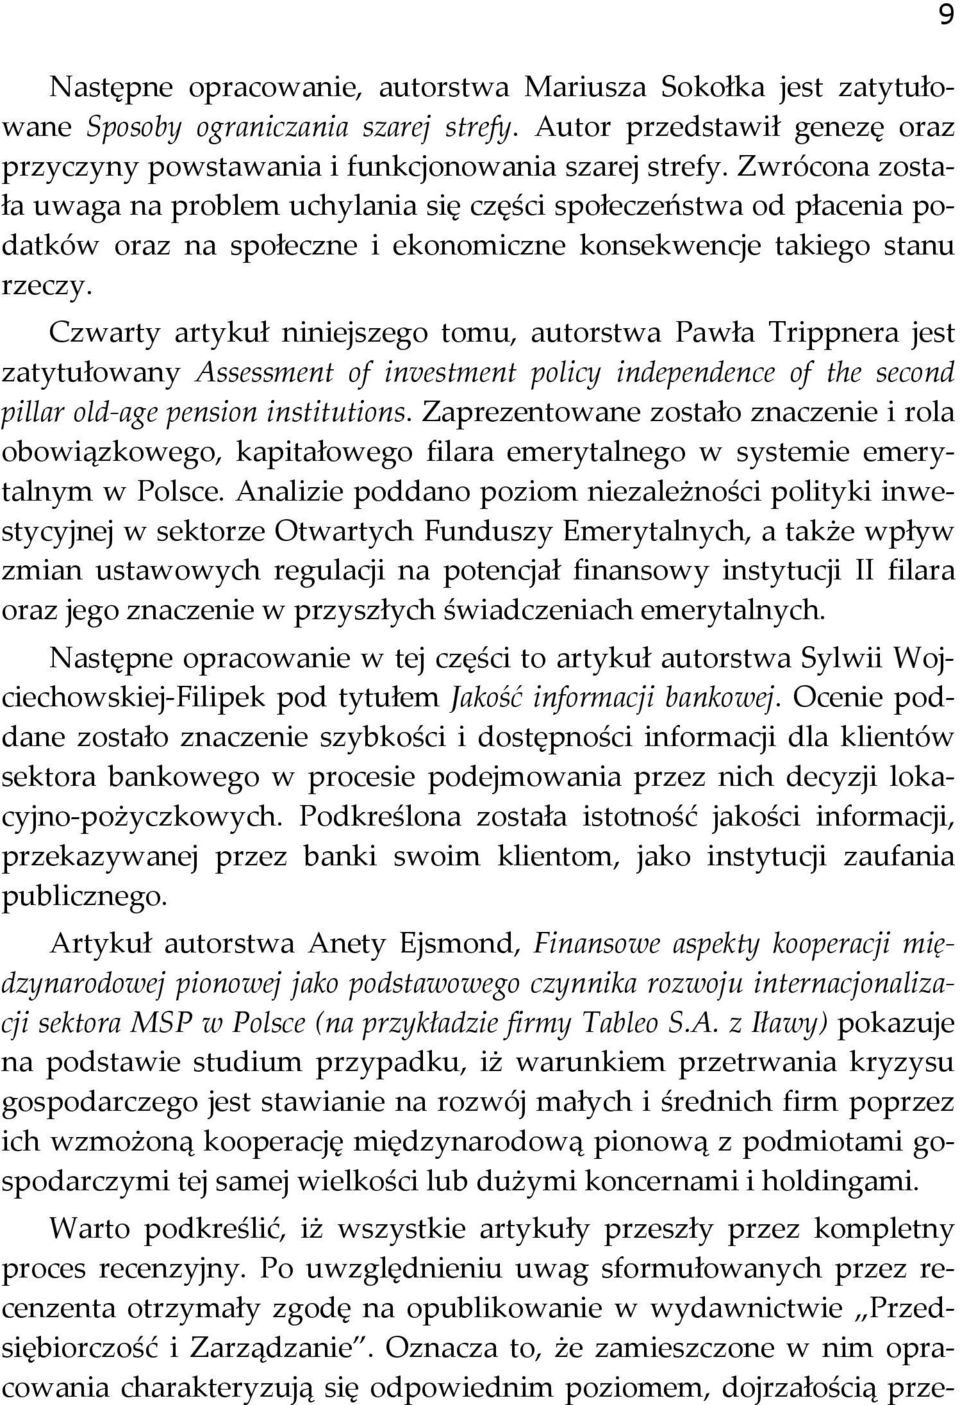 Czwarty artykuł niniejszego tomu, autorstwa Pawła Trippnera jest zatytułowany Assessment of investment policy independence of the second pillar old age pension institutions.